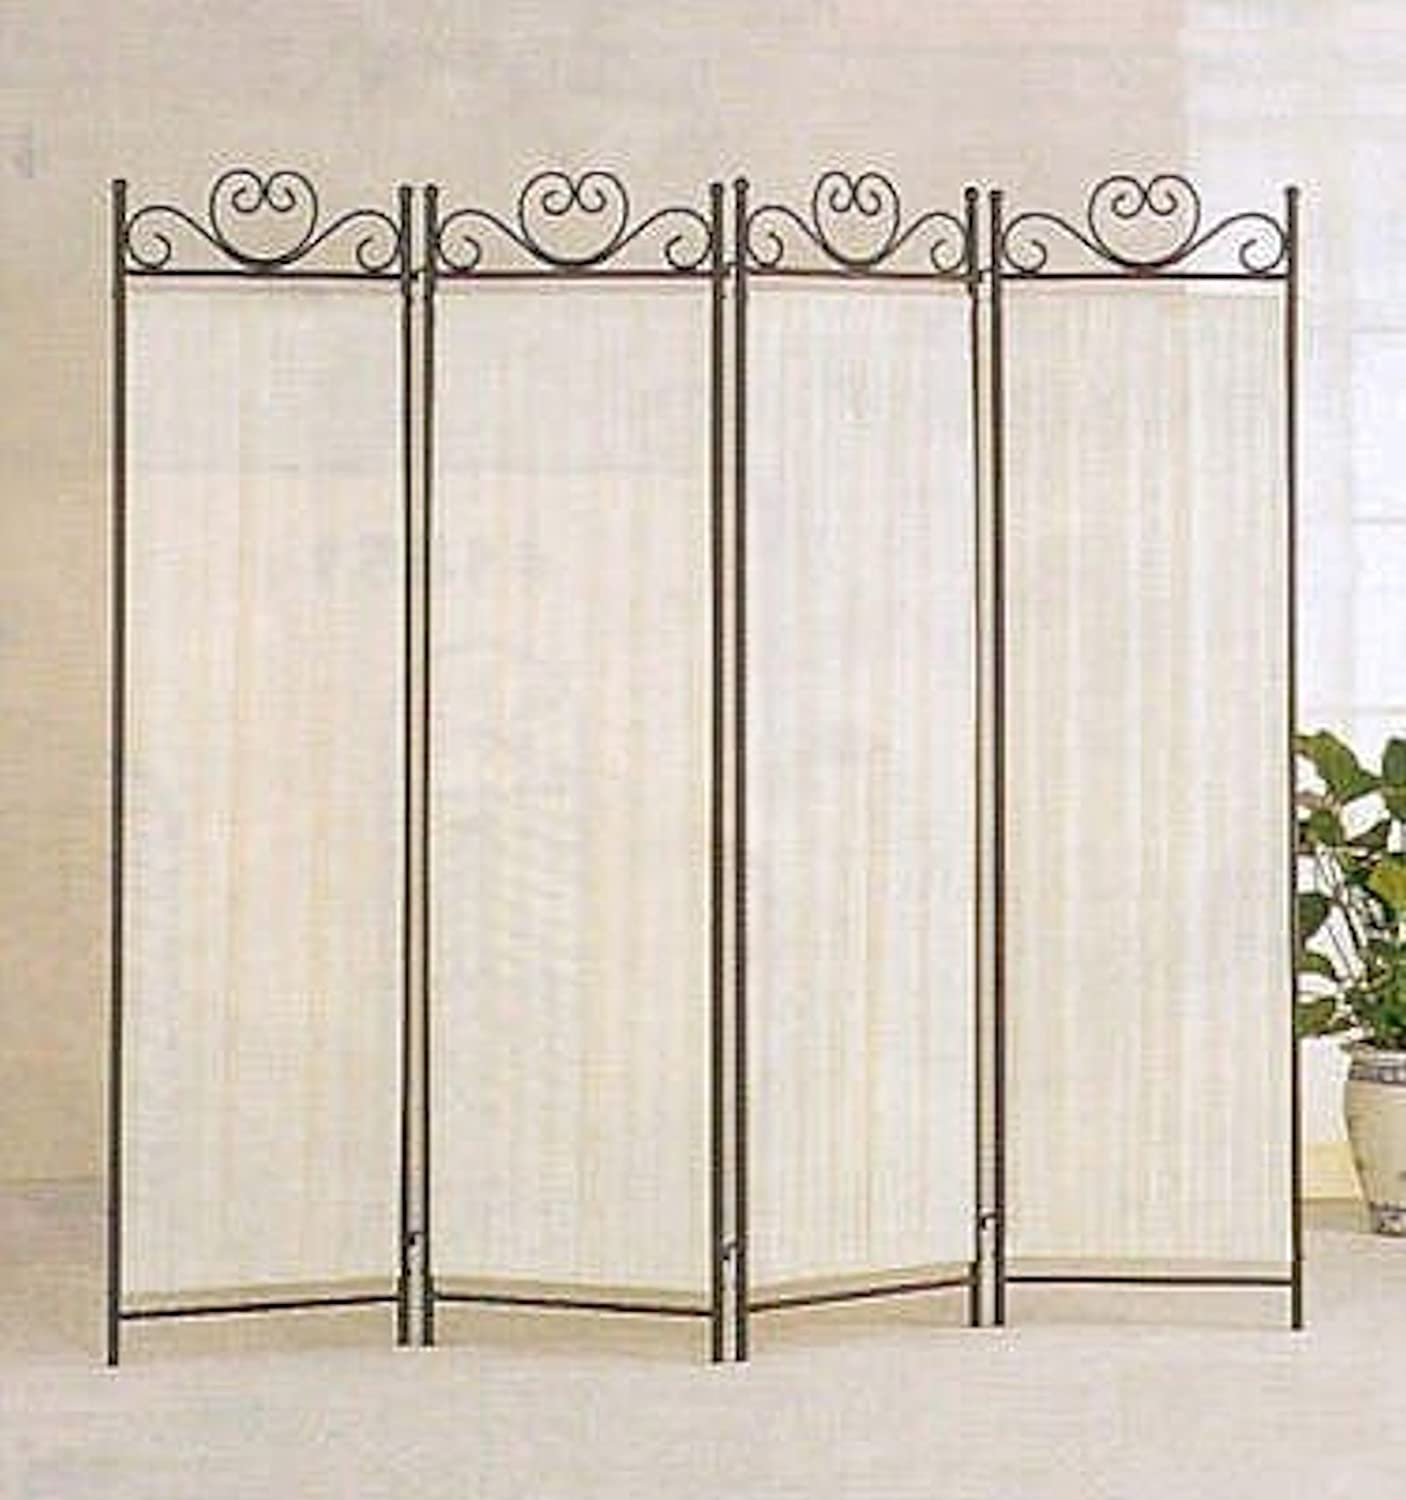 amazoncom legacy decor 4panel room screen divider ivory linen fabric and black metal frame kitchen u0026 dining